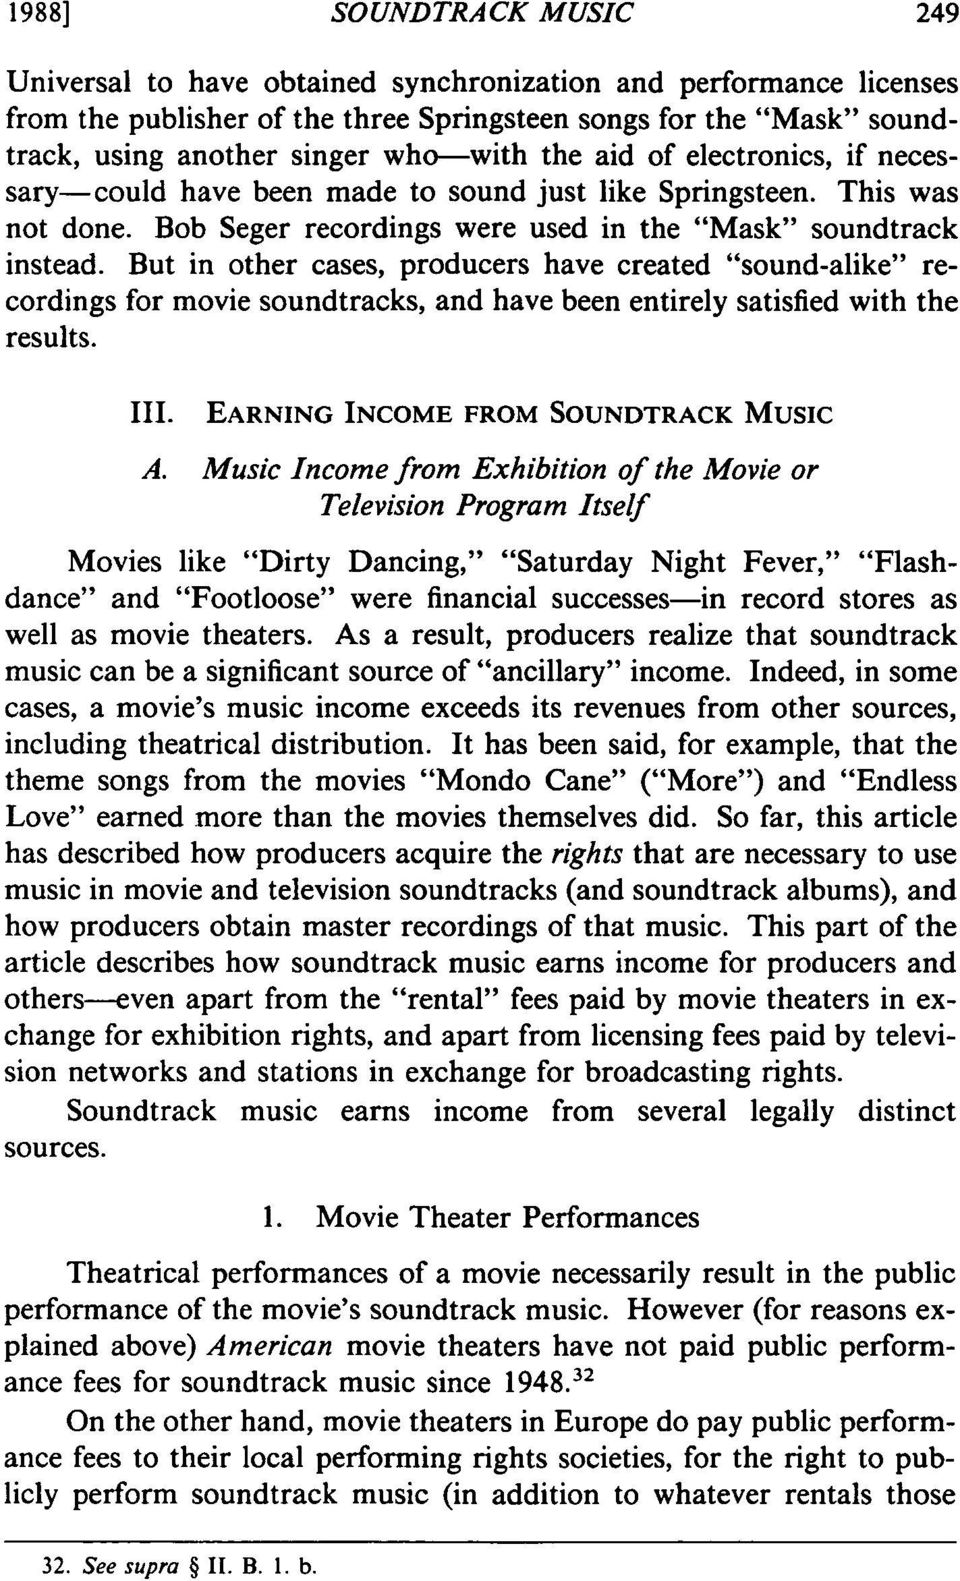 "But in other cases, producers have created ""sound-alike"" recordings for movie soundtracks, and have been entirely satisfied with the results. III. EARNING INCOME FROM SOUNDTRACK MUSIC A."